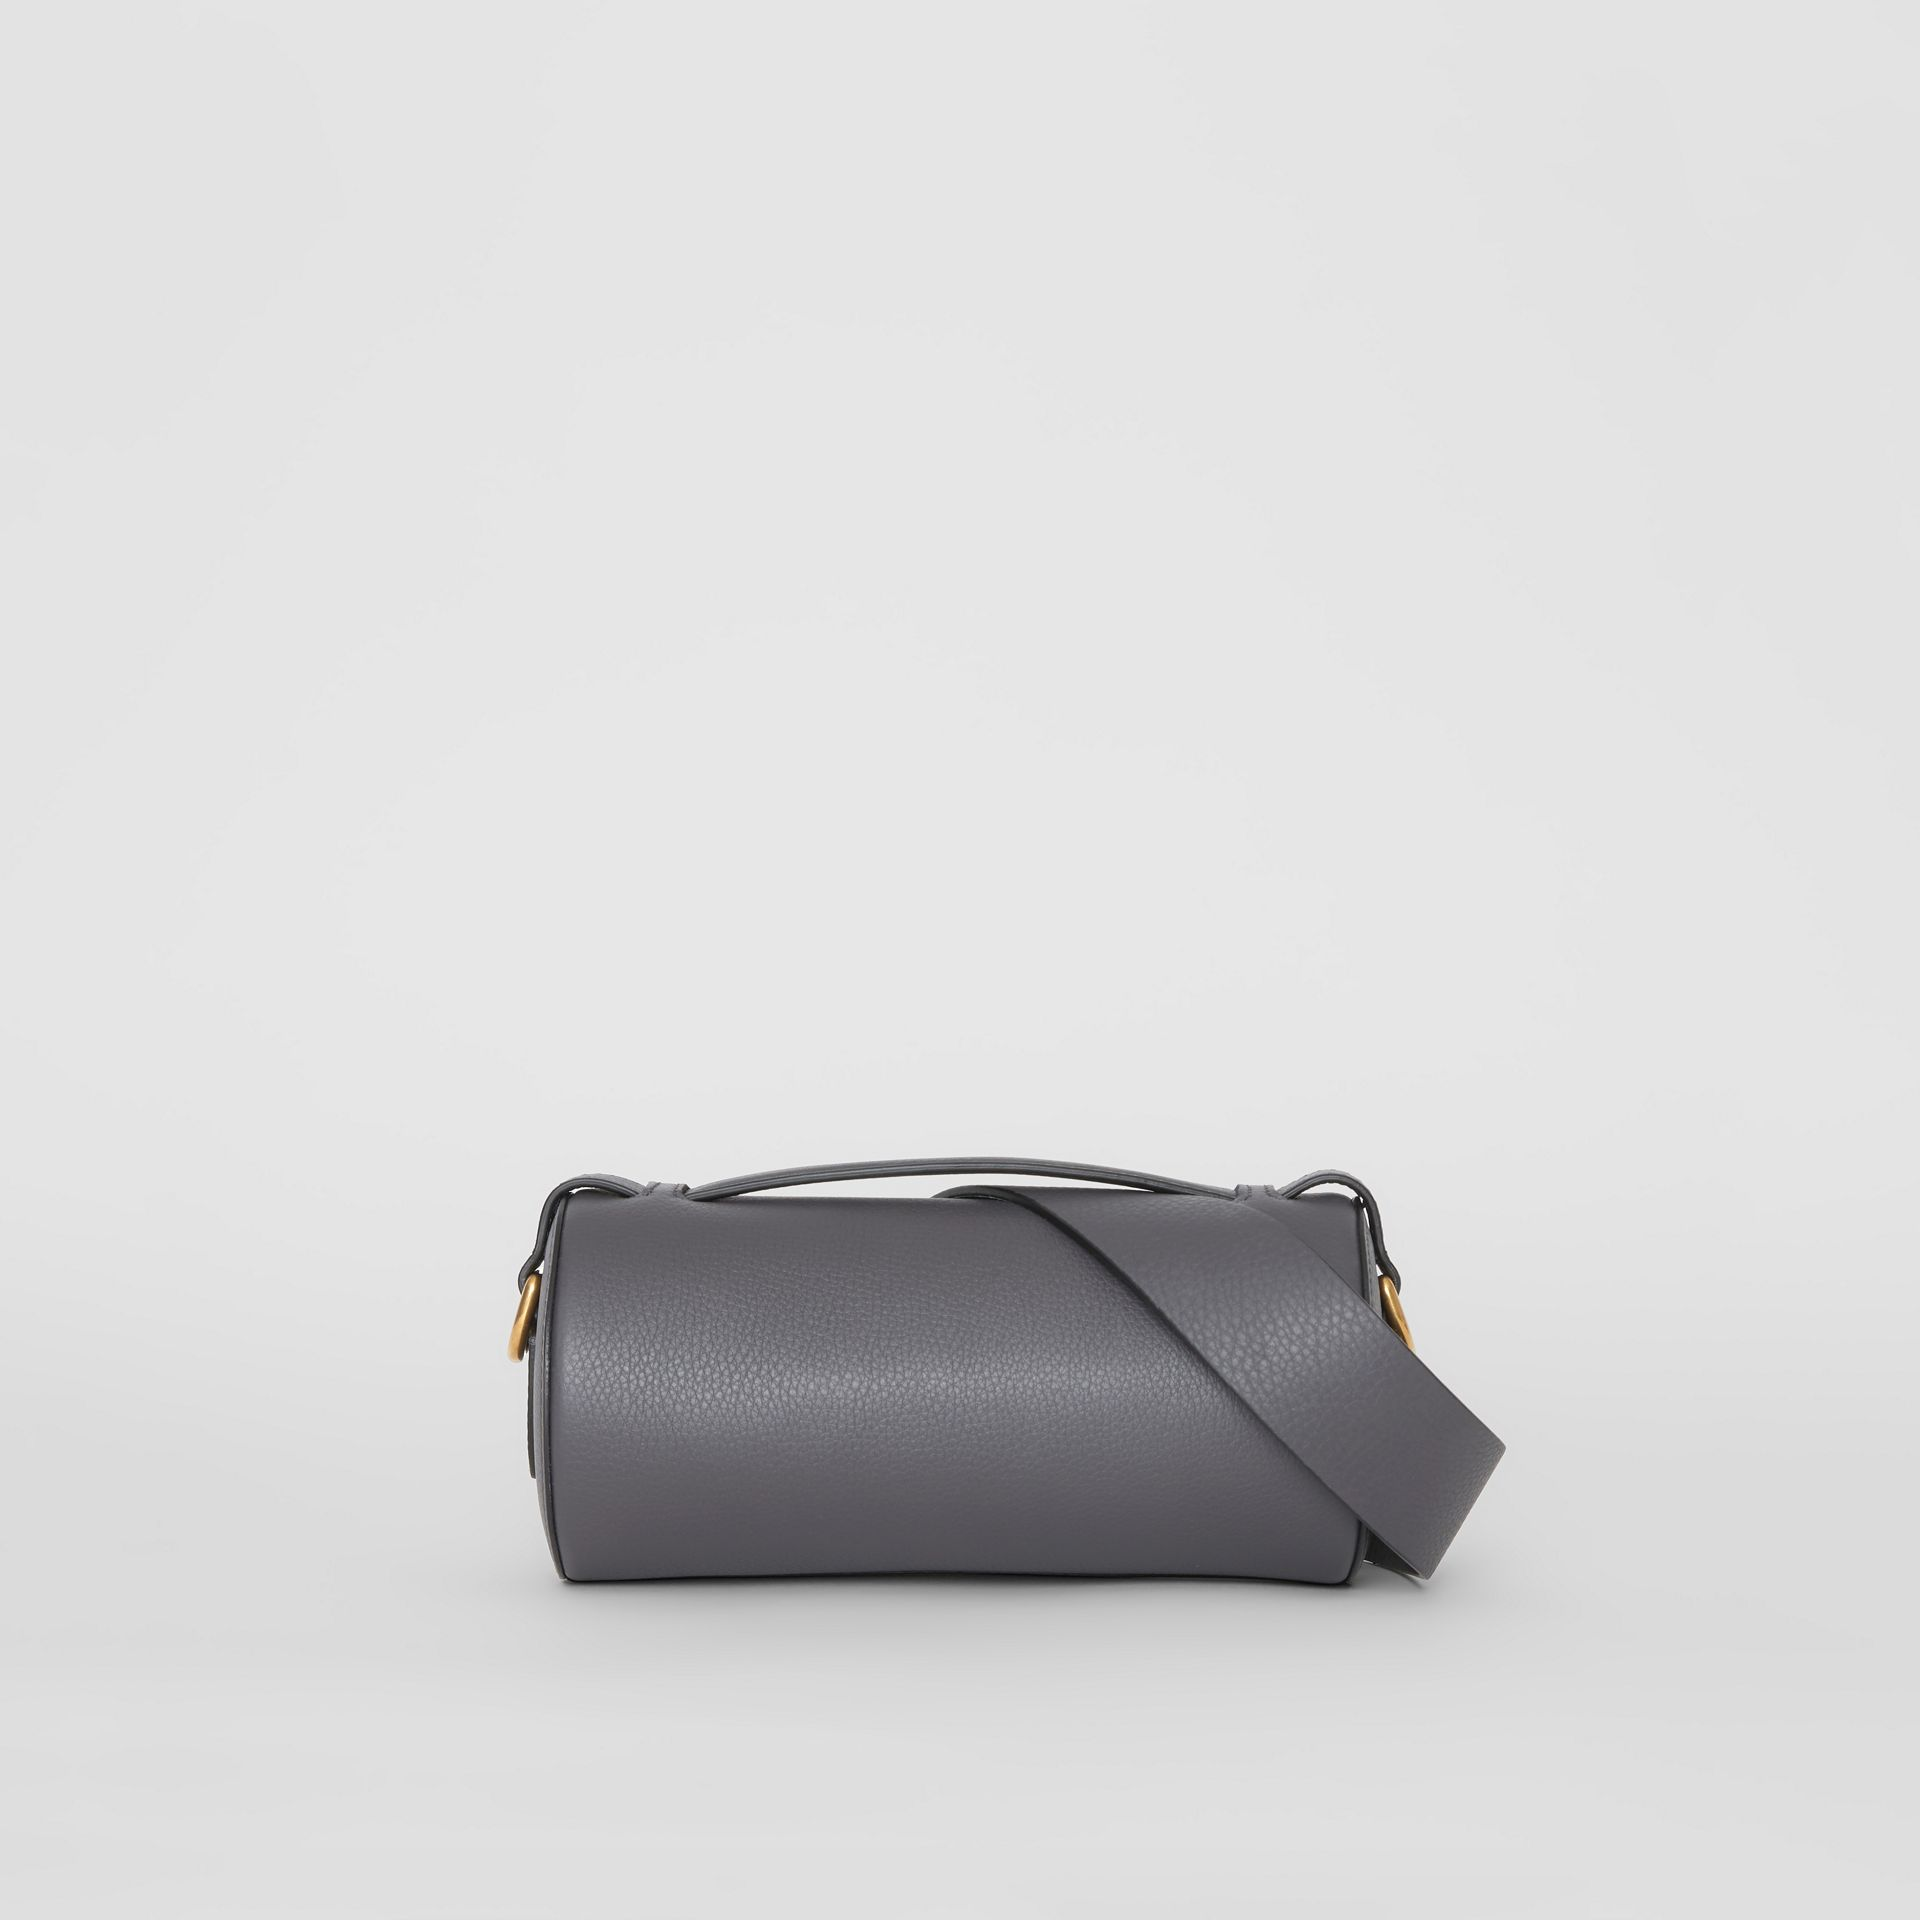 Sac The Barrel en cuir (Gris Anthracite) - Femme | Burberry Canada - photo de la galerie 7